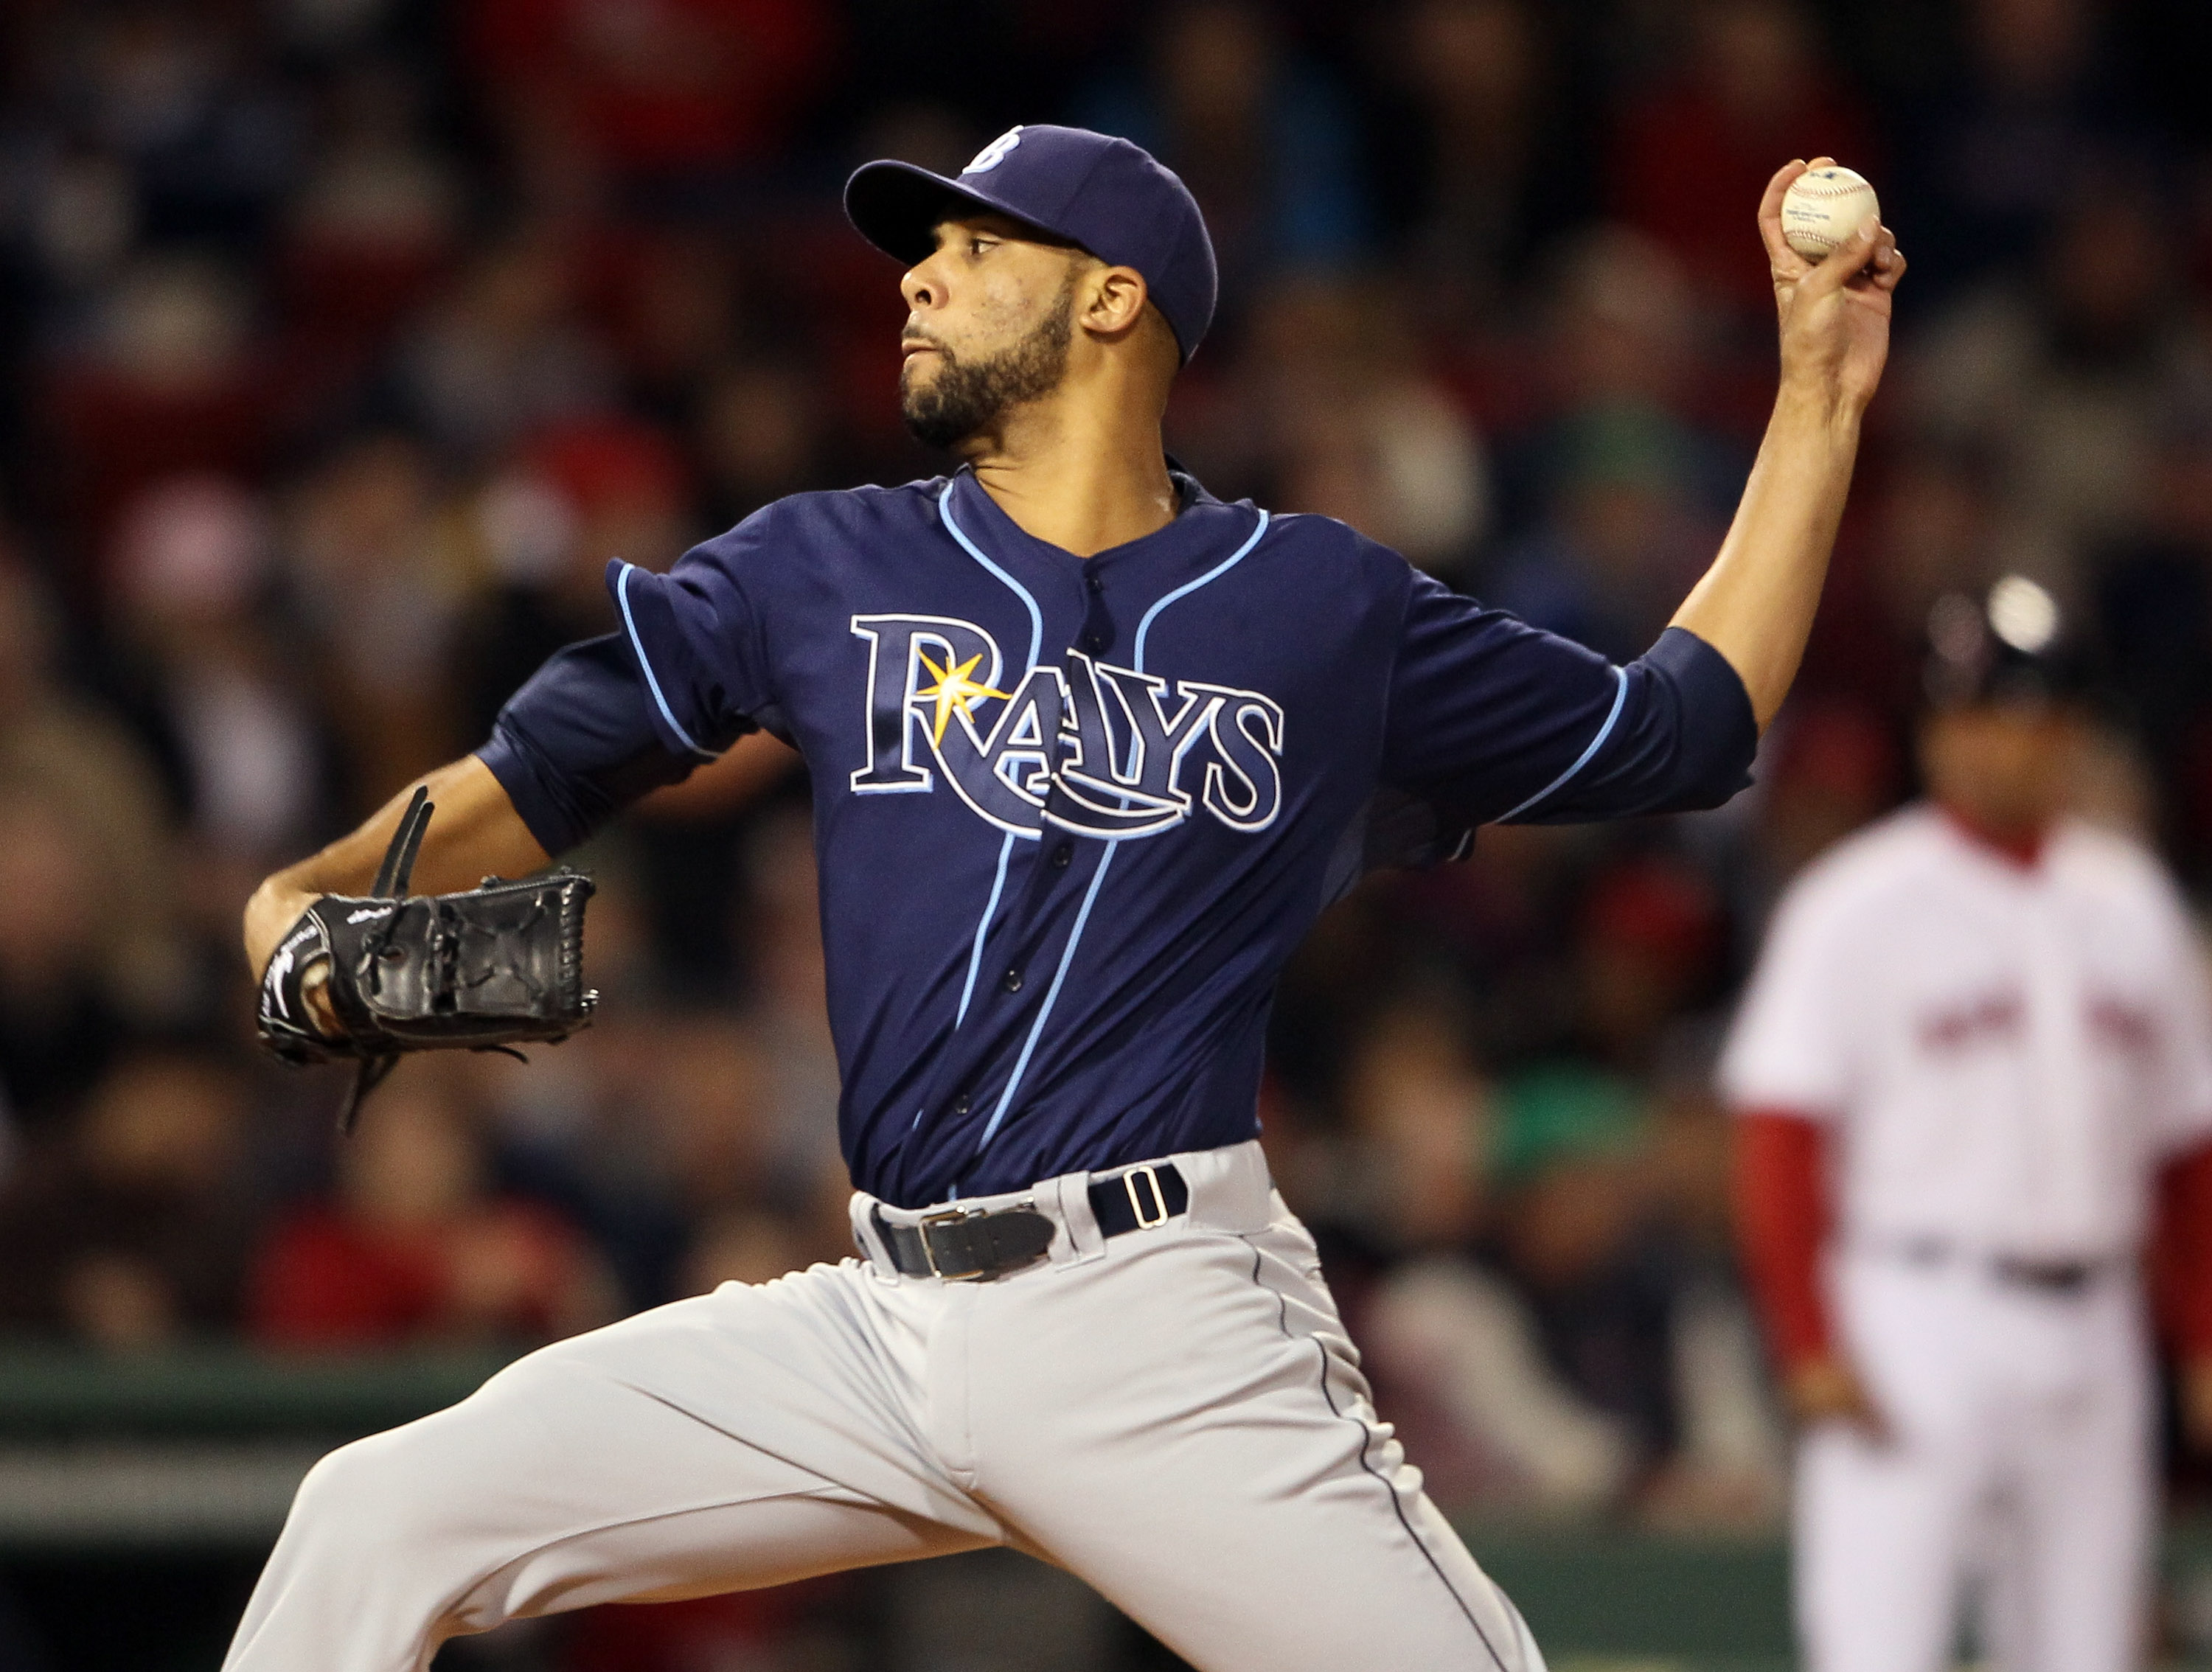 BOSTON, MA - APRIL 12:  David Price #14 of the Tampa Bay Rays delivers a pitch in the first inning against the Boston Red Sox on April 12, 2011 at Fenway Park in Boston, Massachusetts.  (Photo by Elsa/Getty Images)